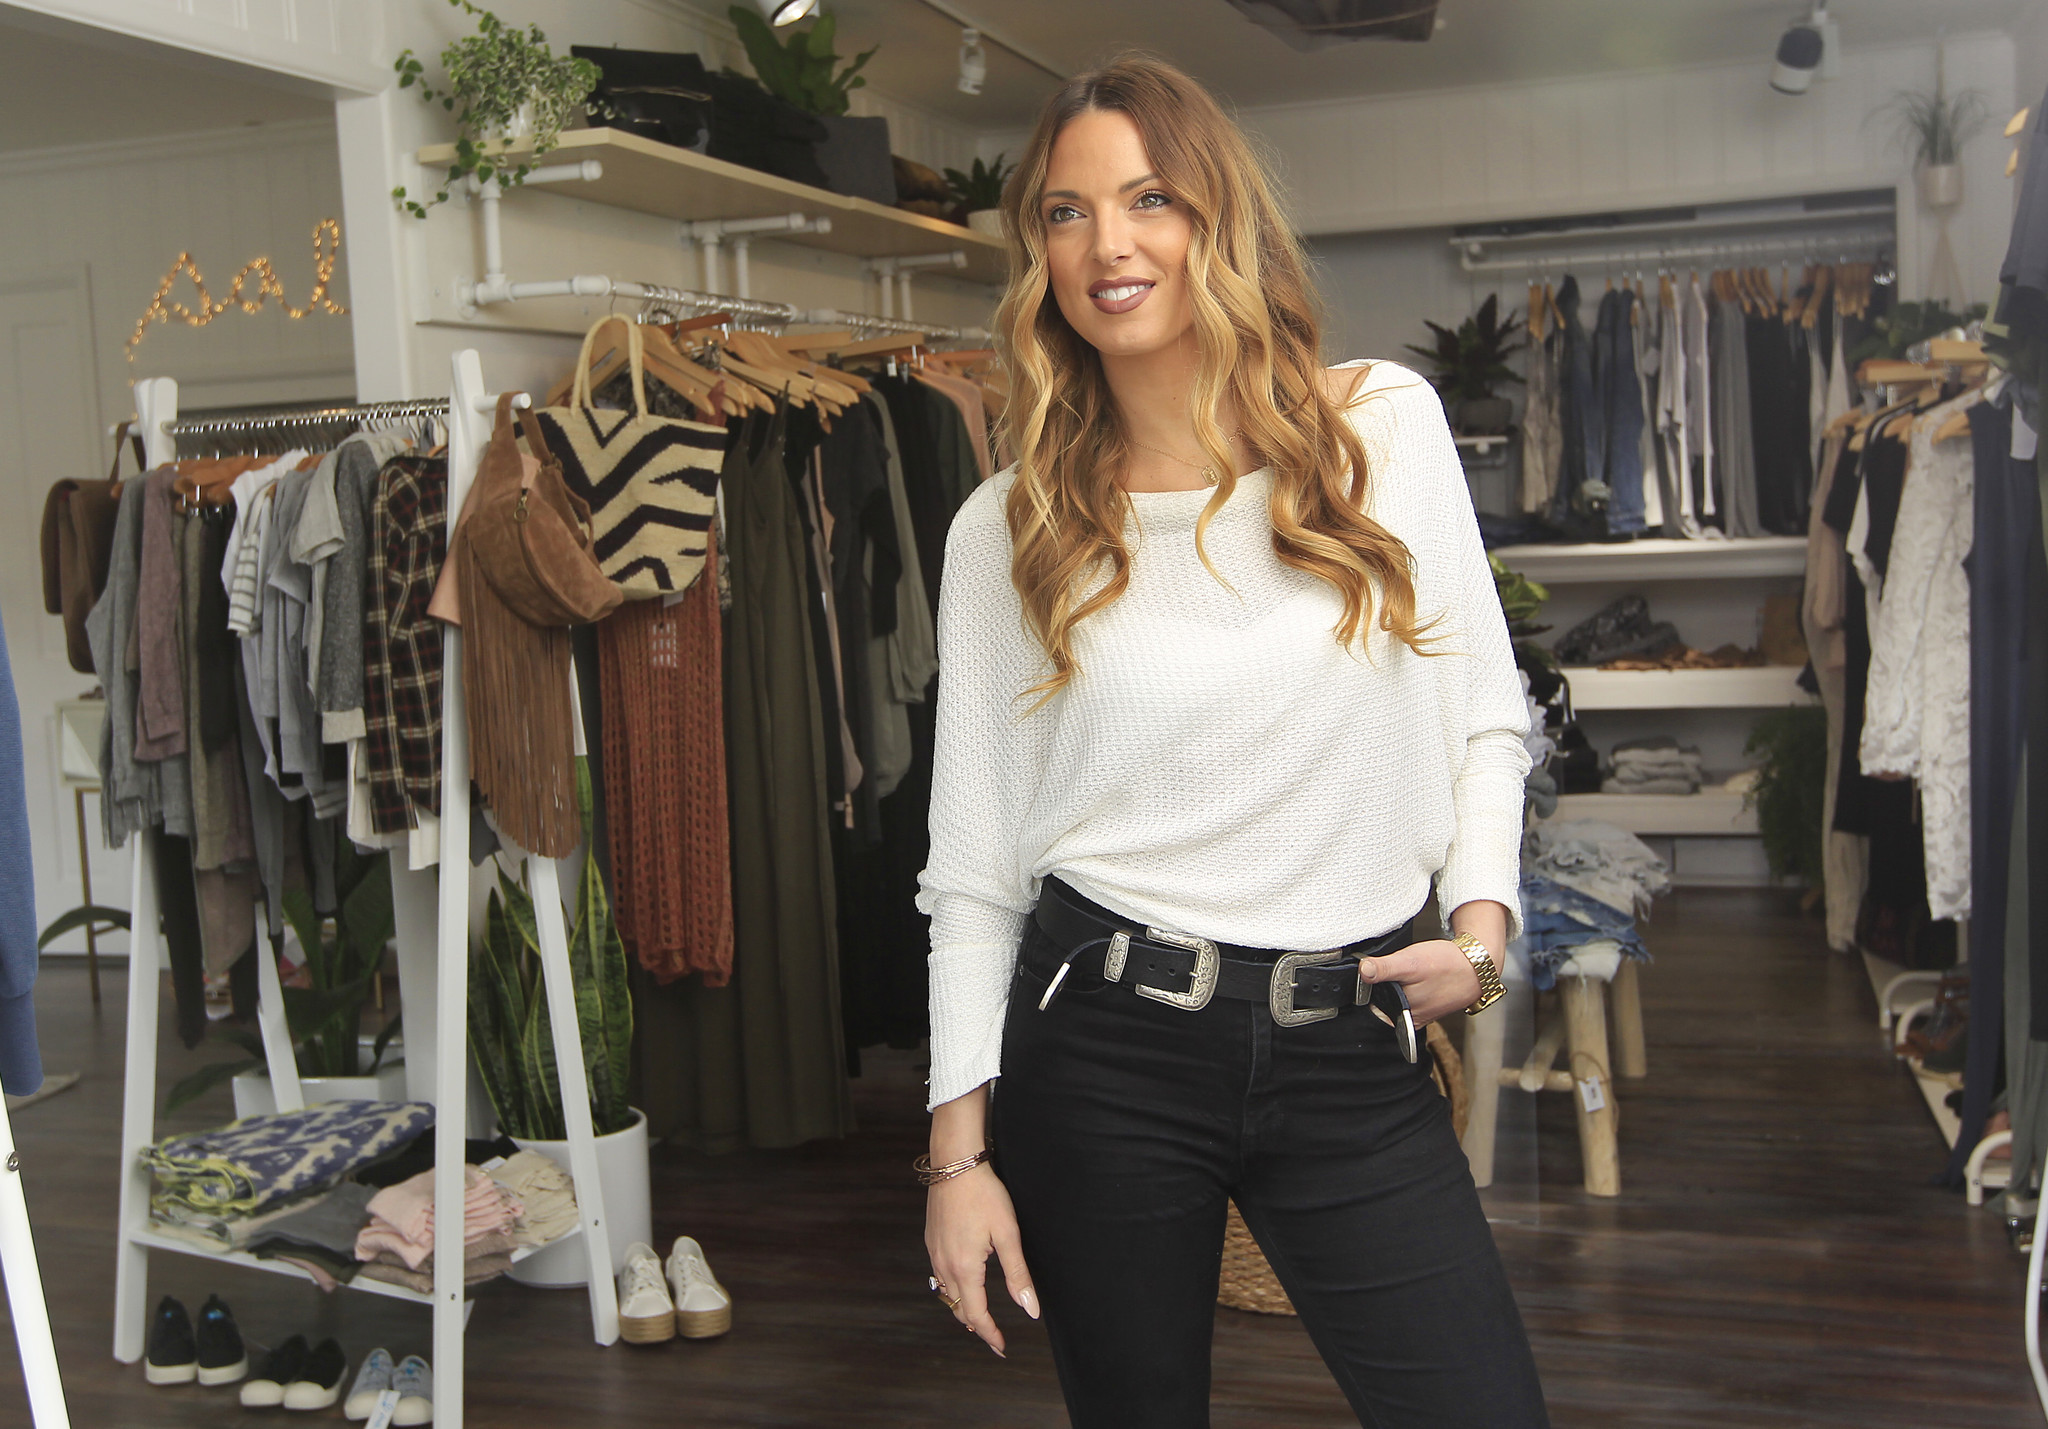 Rob Machado S Wife Opens Global Boutique The San Diego